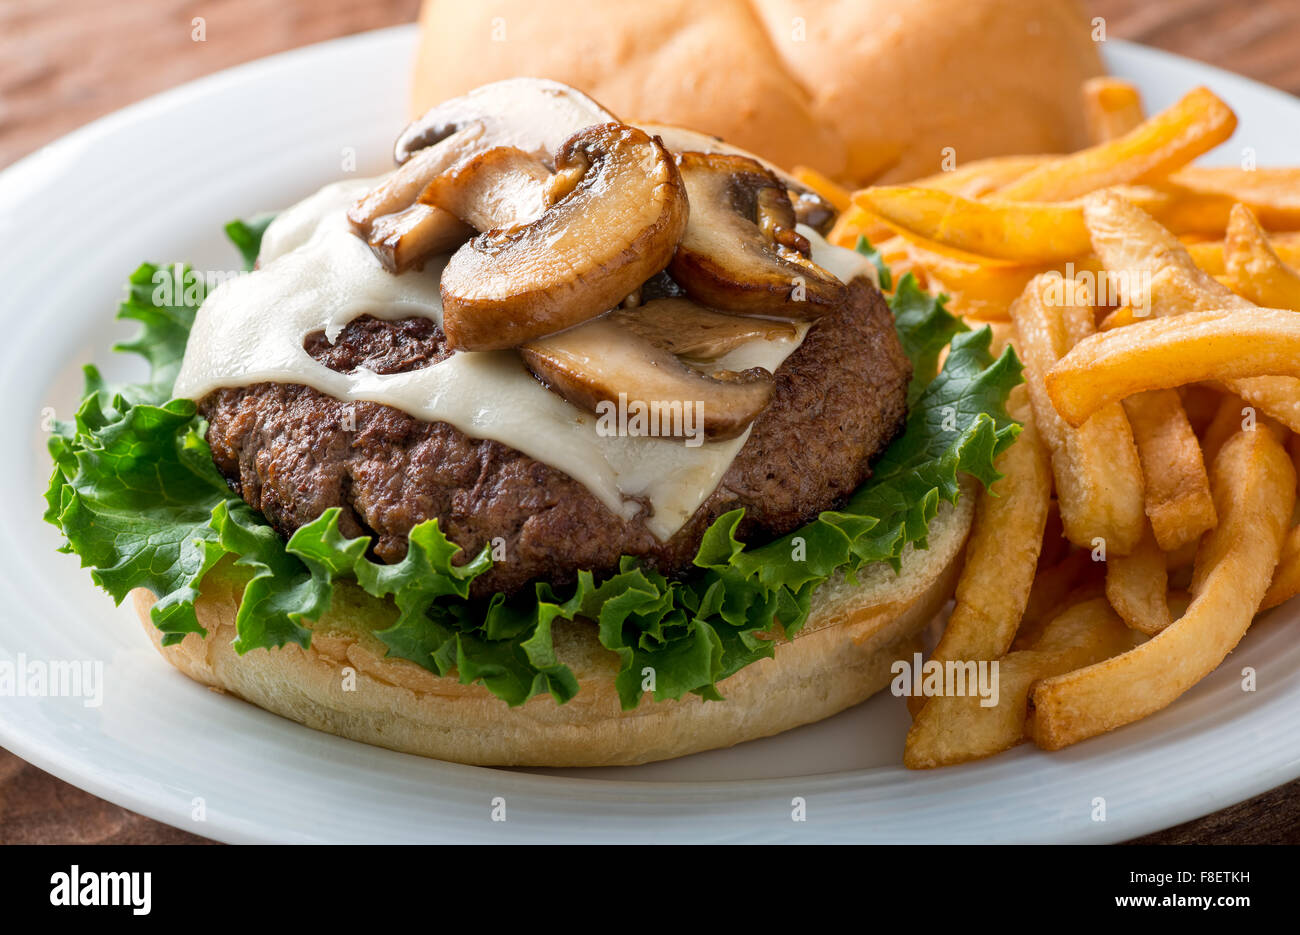 A delicious hamburger topped with swiss cheese and fried mushrooms on a kaiser. - Stock Image